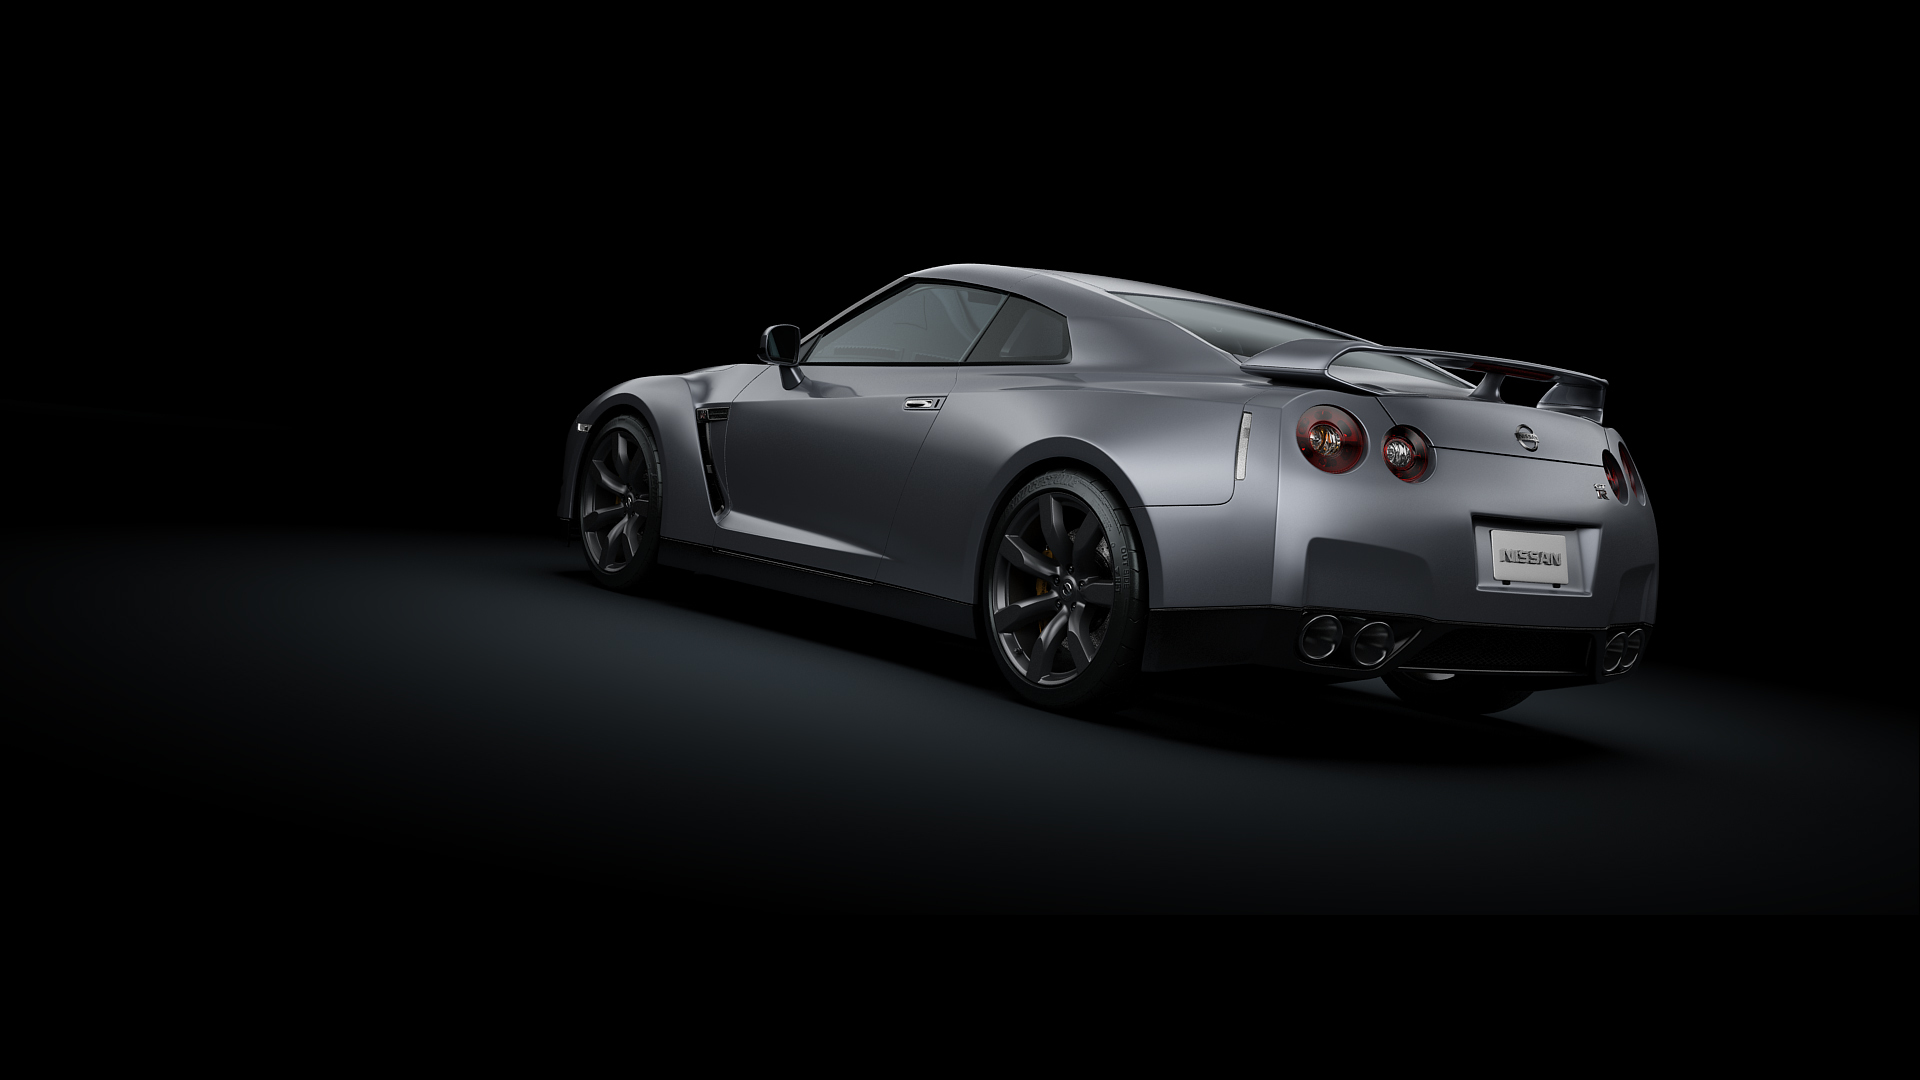 cars vehicles side view HD Wallpaper